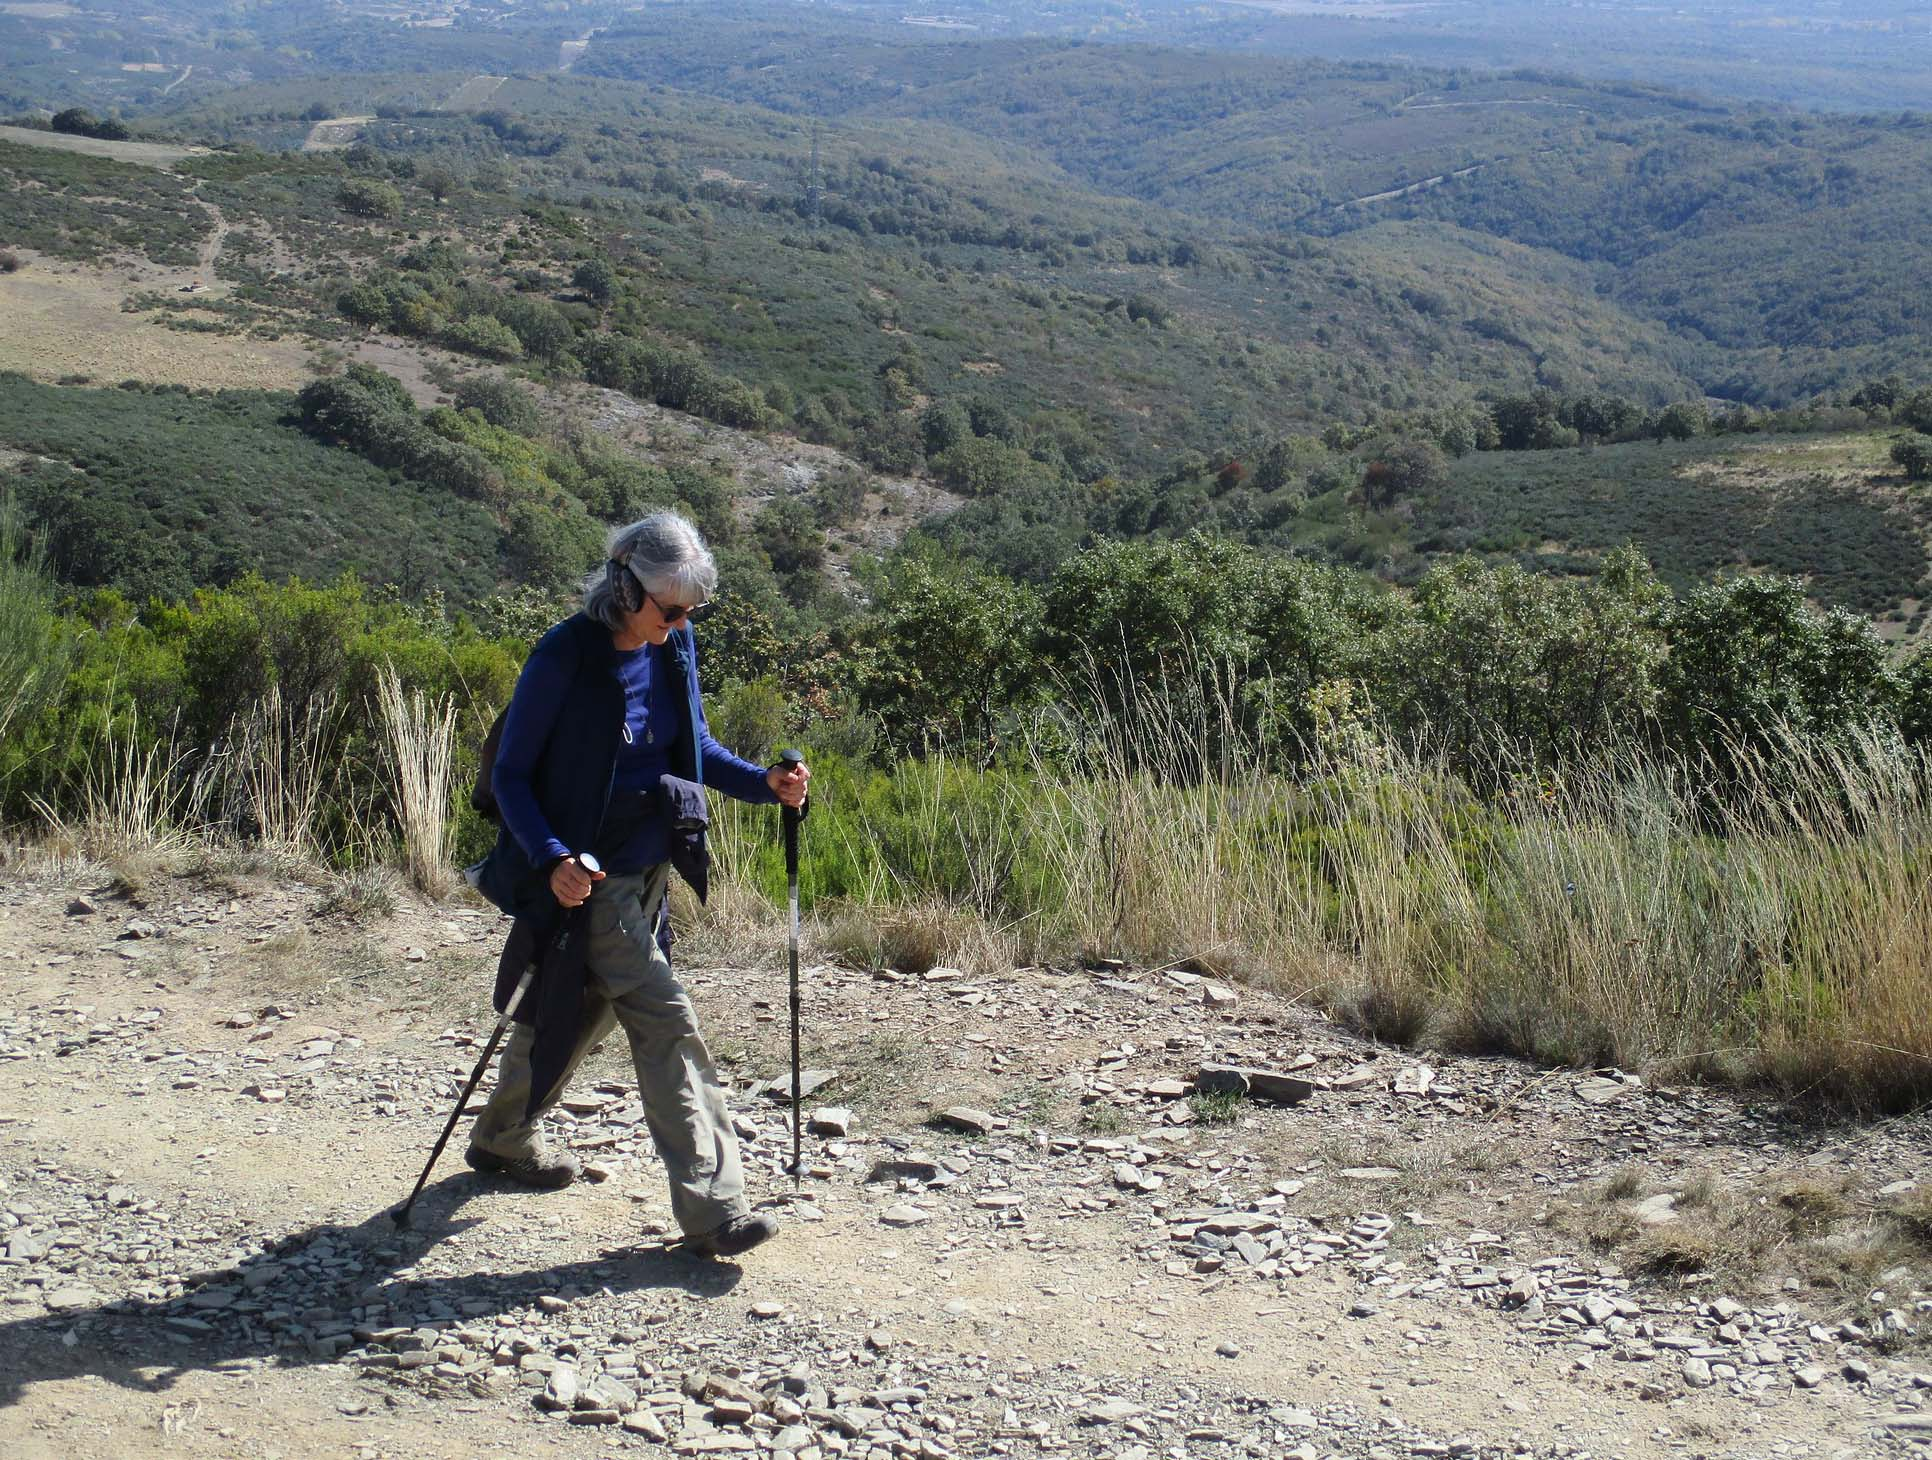 Camino de Santiago Tour - October 7, 2019